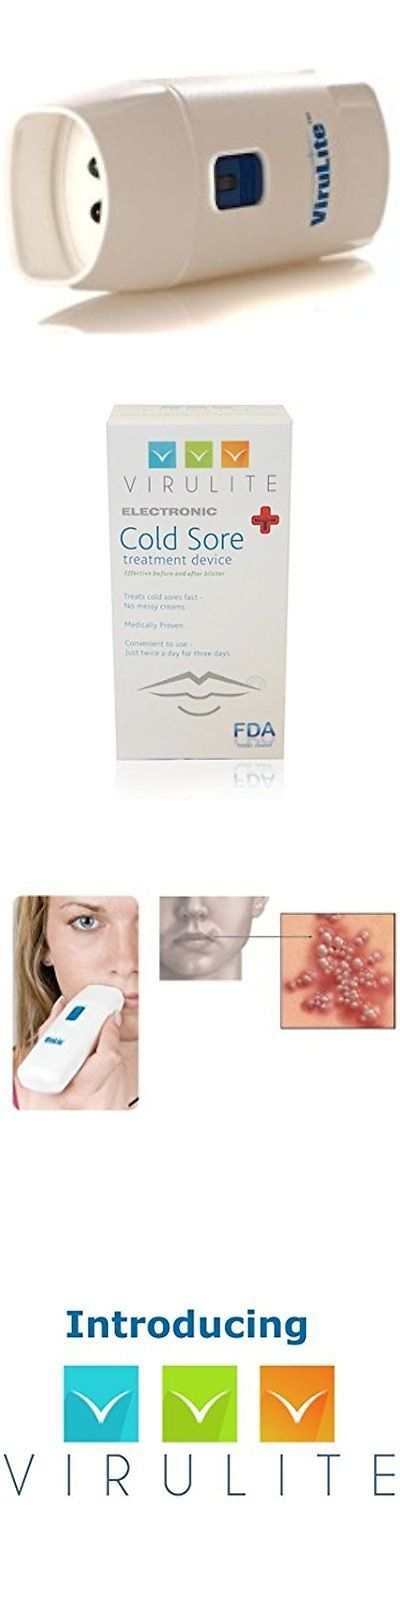 Cold Sores: Virulite Fda Cold Sore And Fever Blister Treatments Approved Electronic Cold Sore -> BUY IT NOW ONLY: $125.92 on eBay!